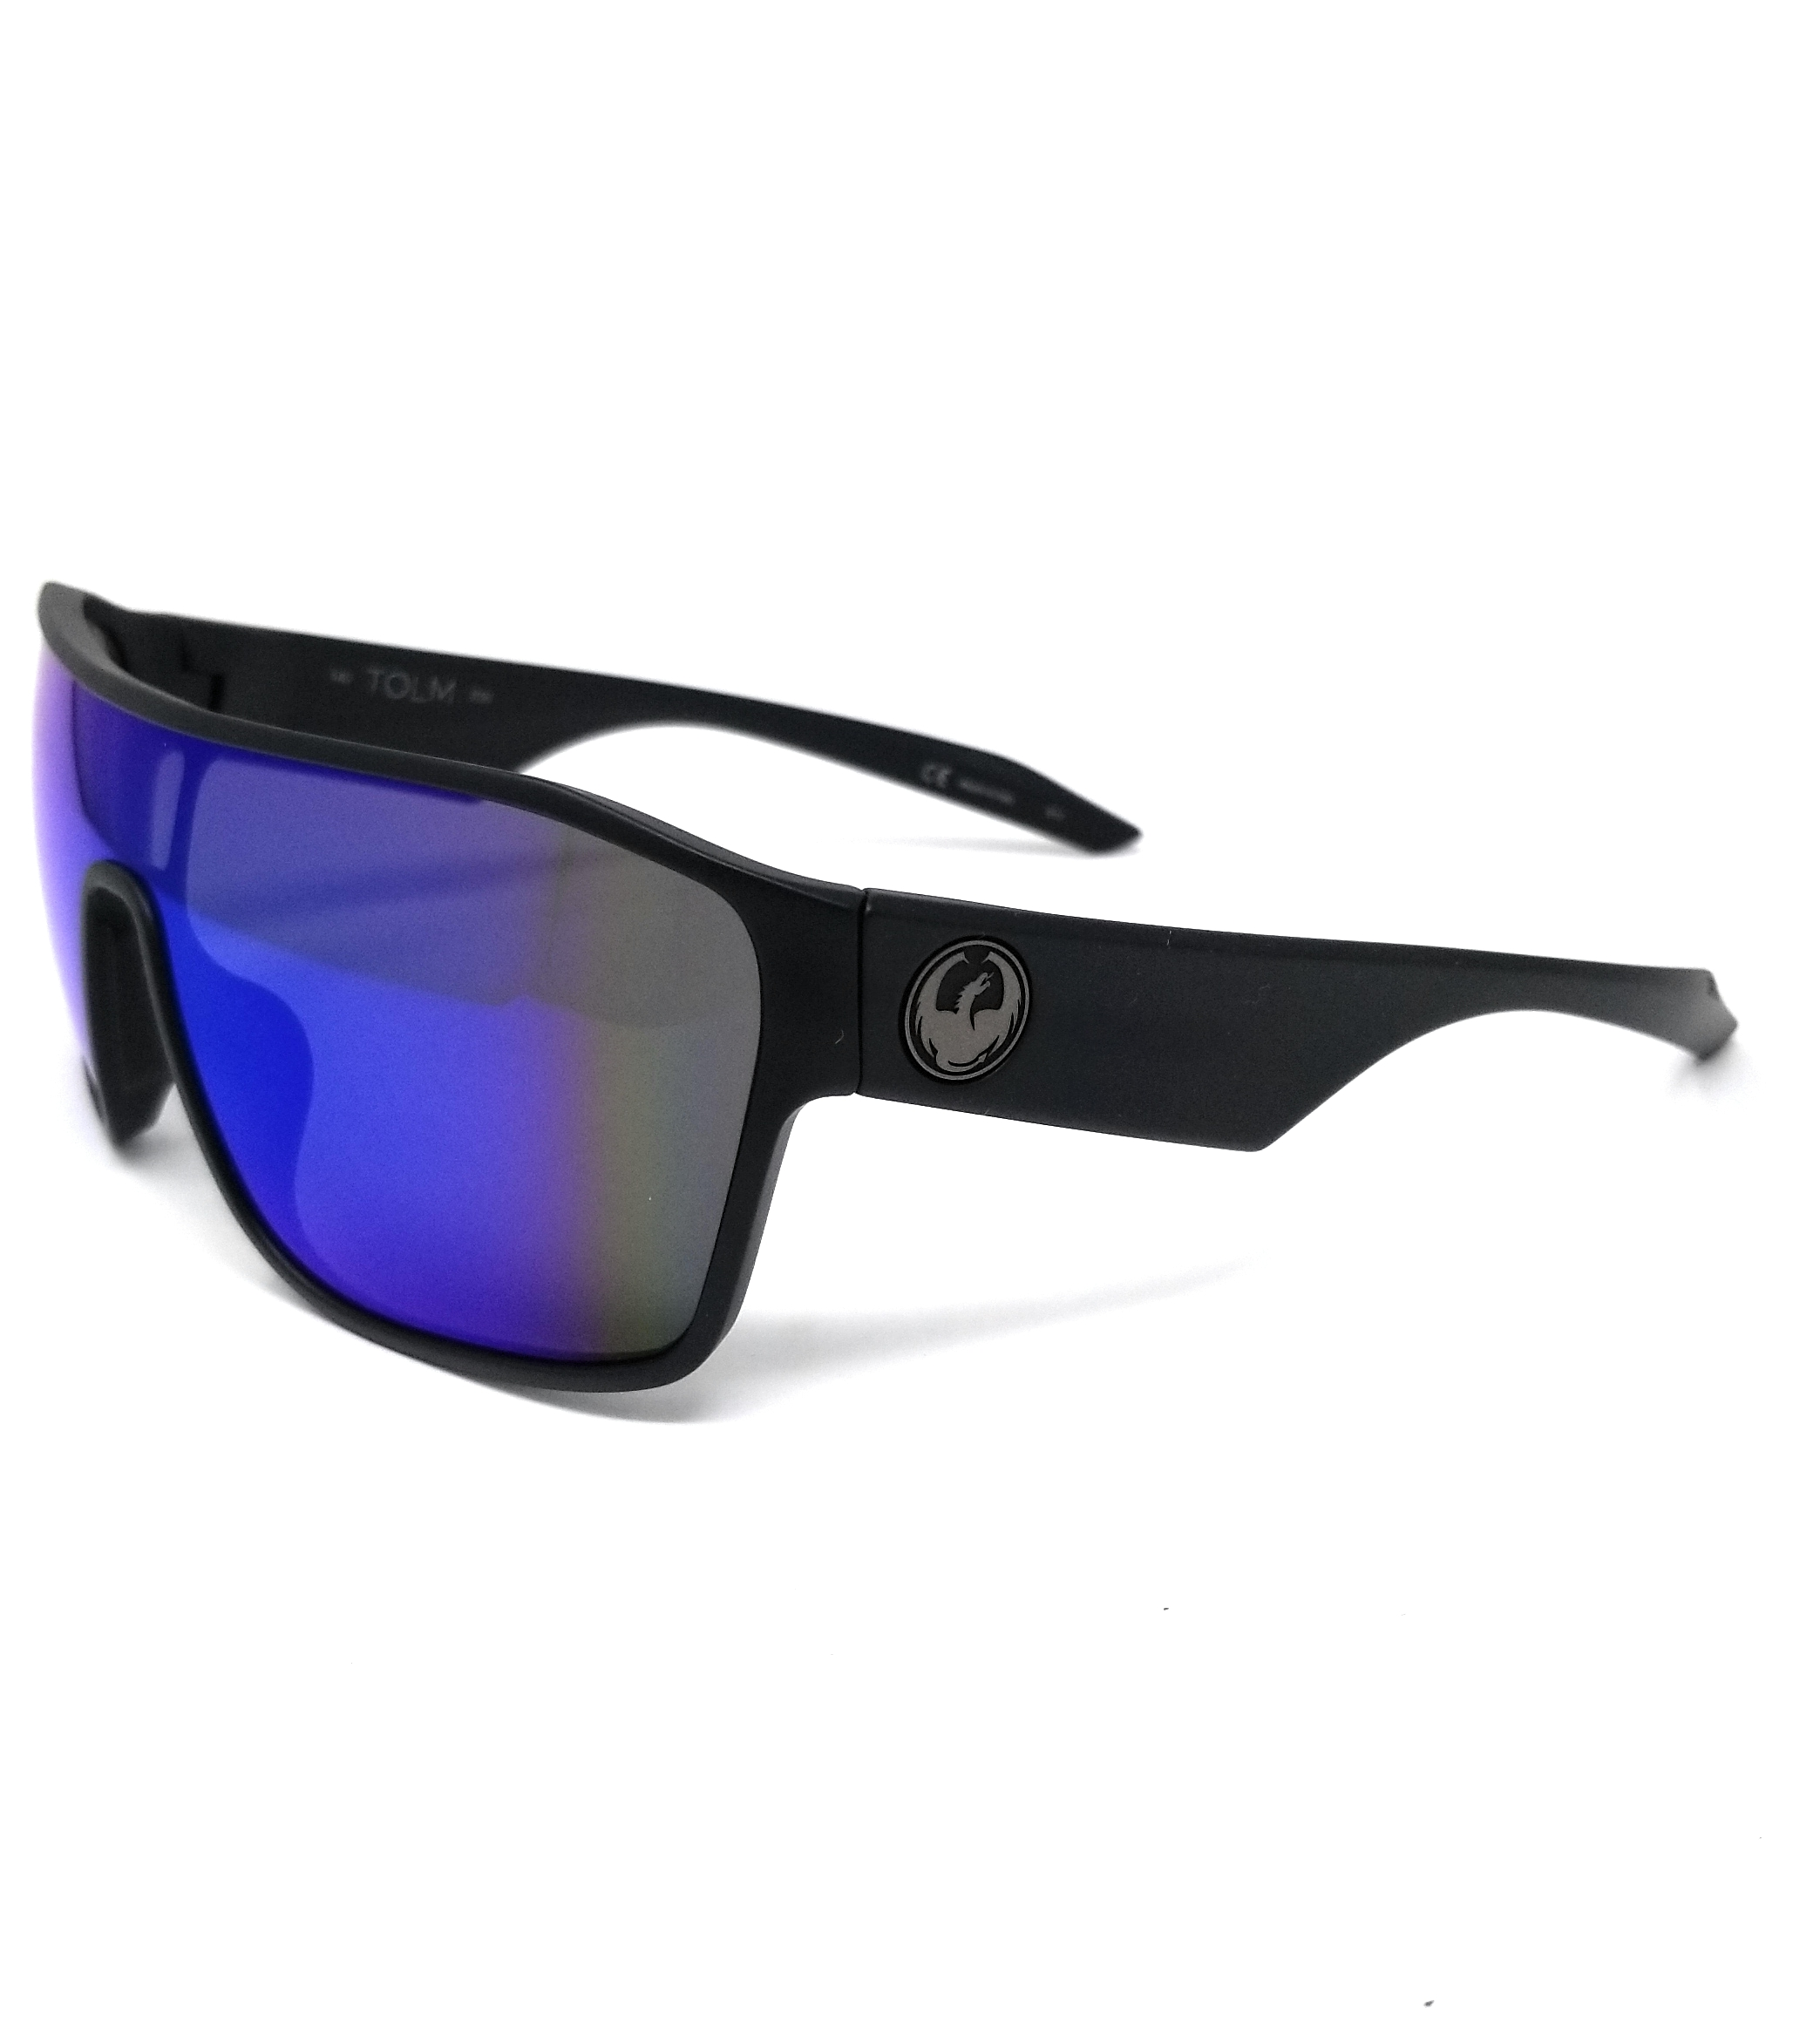 NEW DRAGON Sunglasses DR TOLM ION 022 Matte Black with Red Ion  Lenses